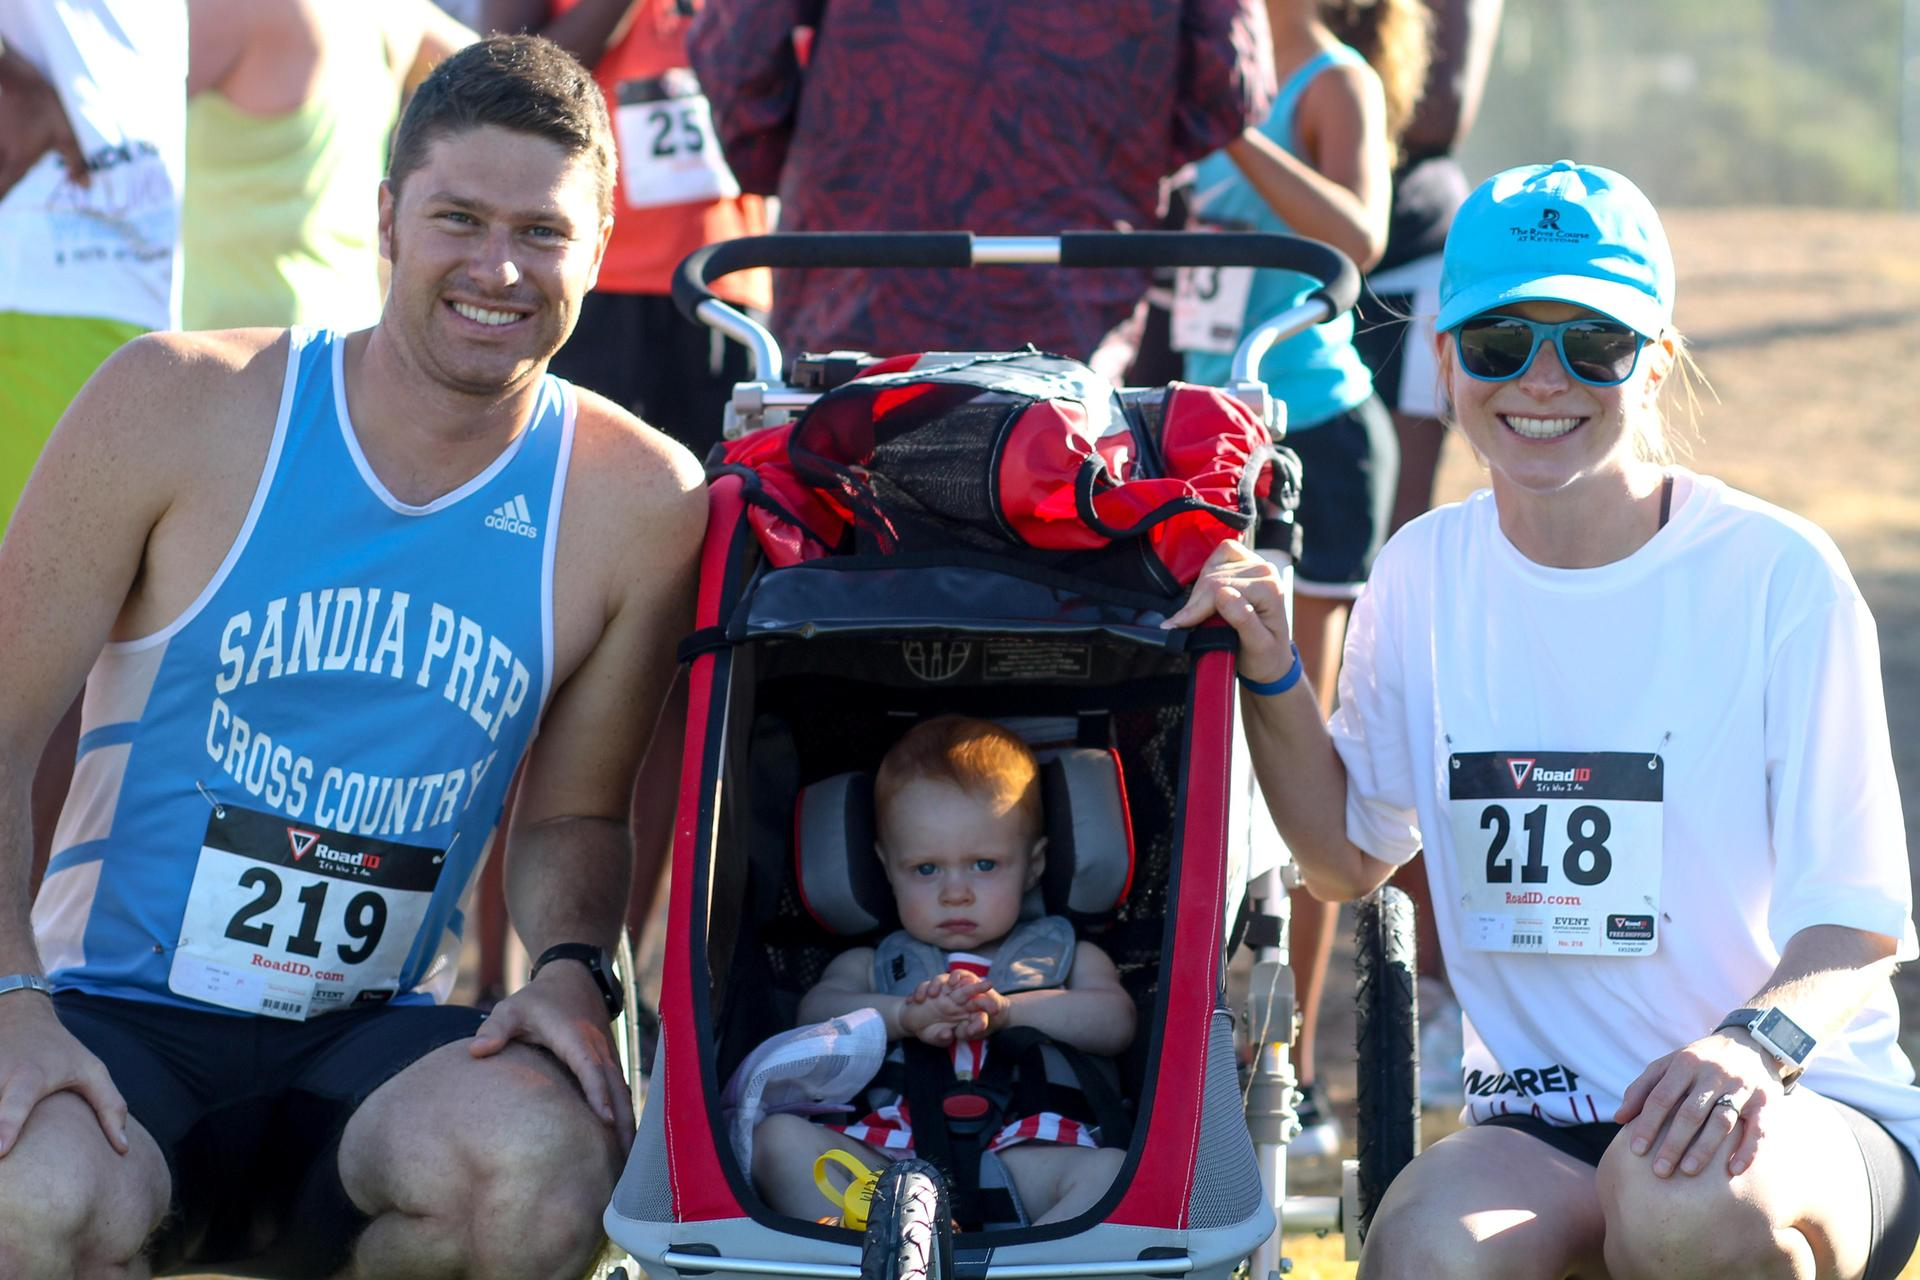 Family with baby smile at 5K run